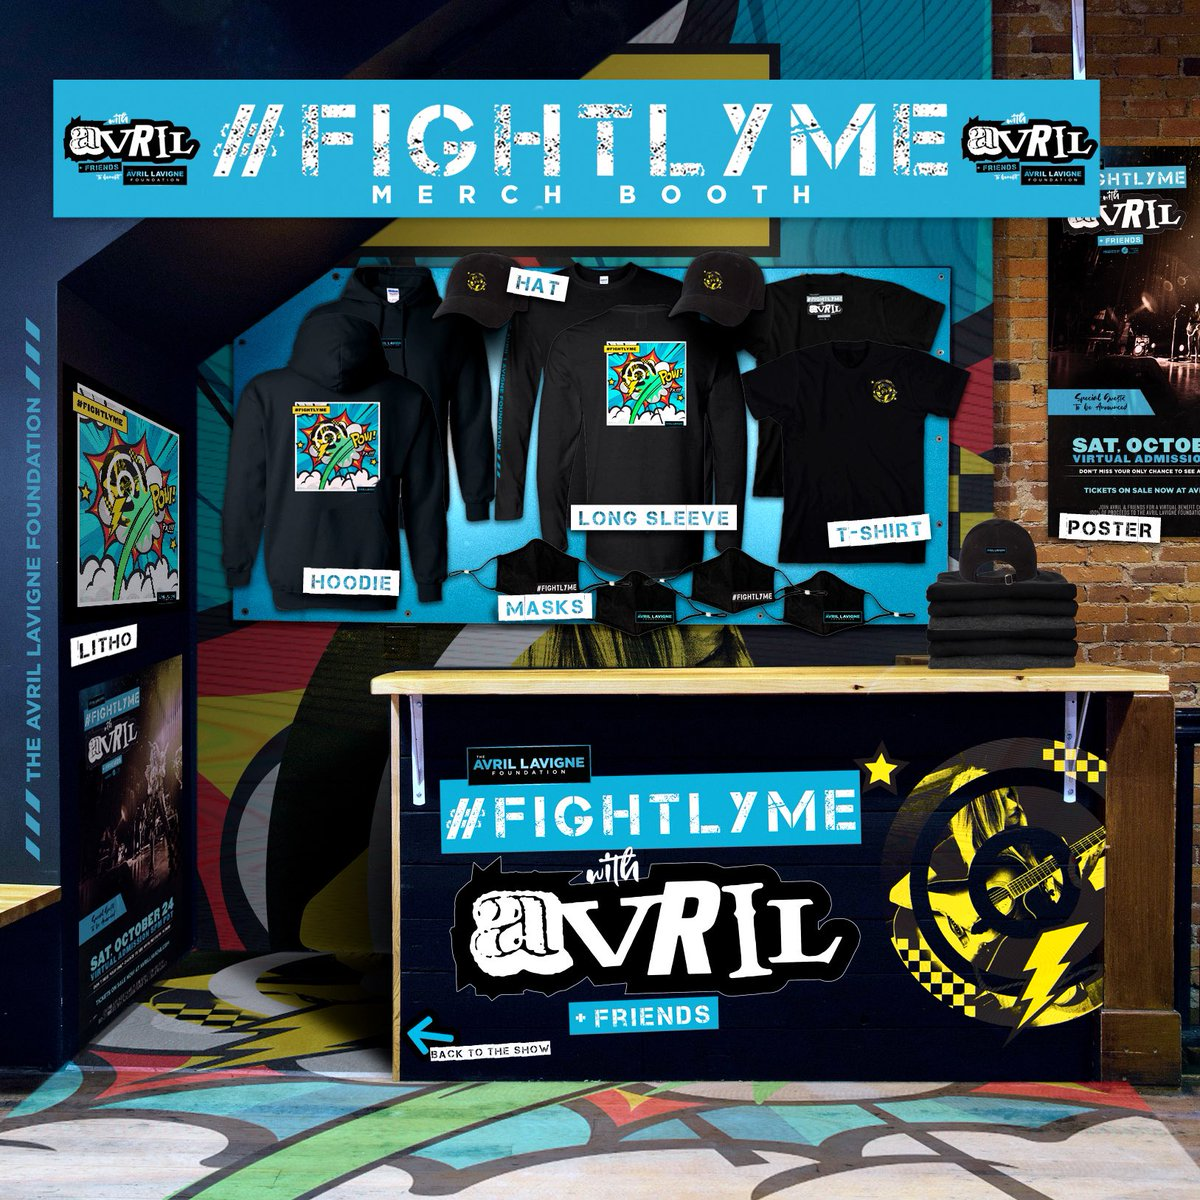 Visit the #FightLyme Virtual Merch booth for a limited time today! Get your exclusive pieces before the show!